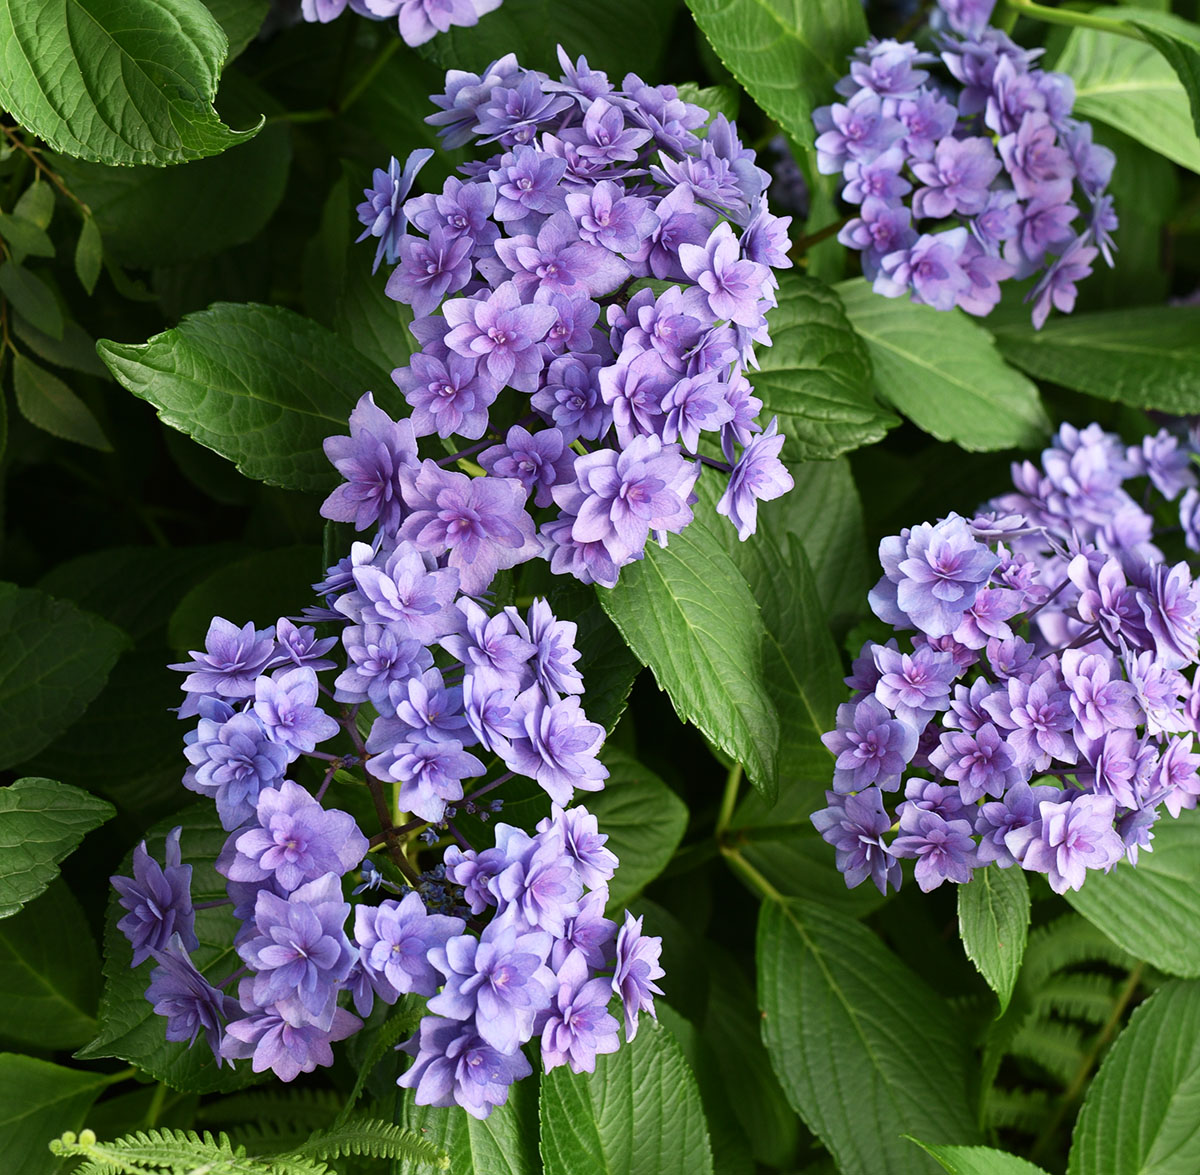 Doublicious hydrangea is marketed as a pink hydrangea but in the Piedmont region of Georgia, purple or blue flowers are inevitable when it comes to the macrophyllas.